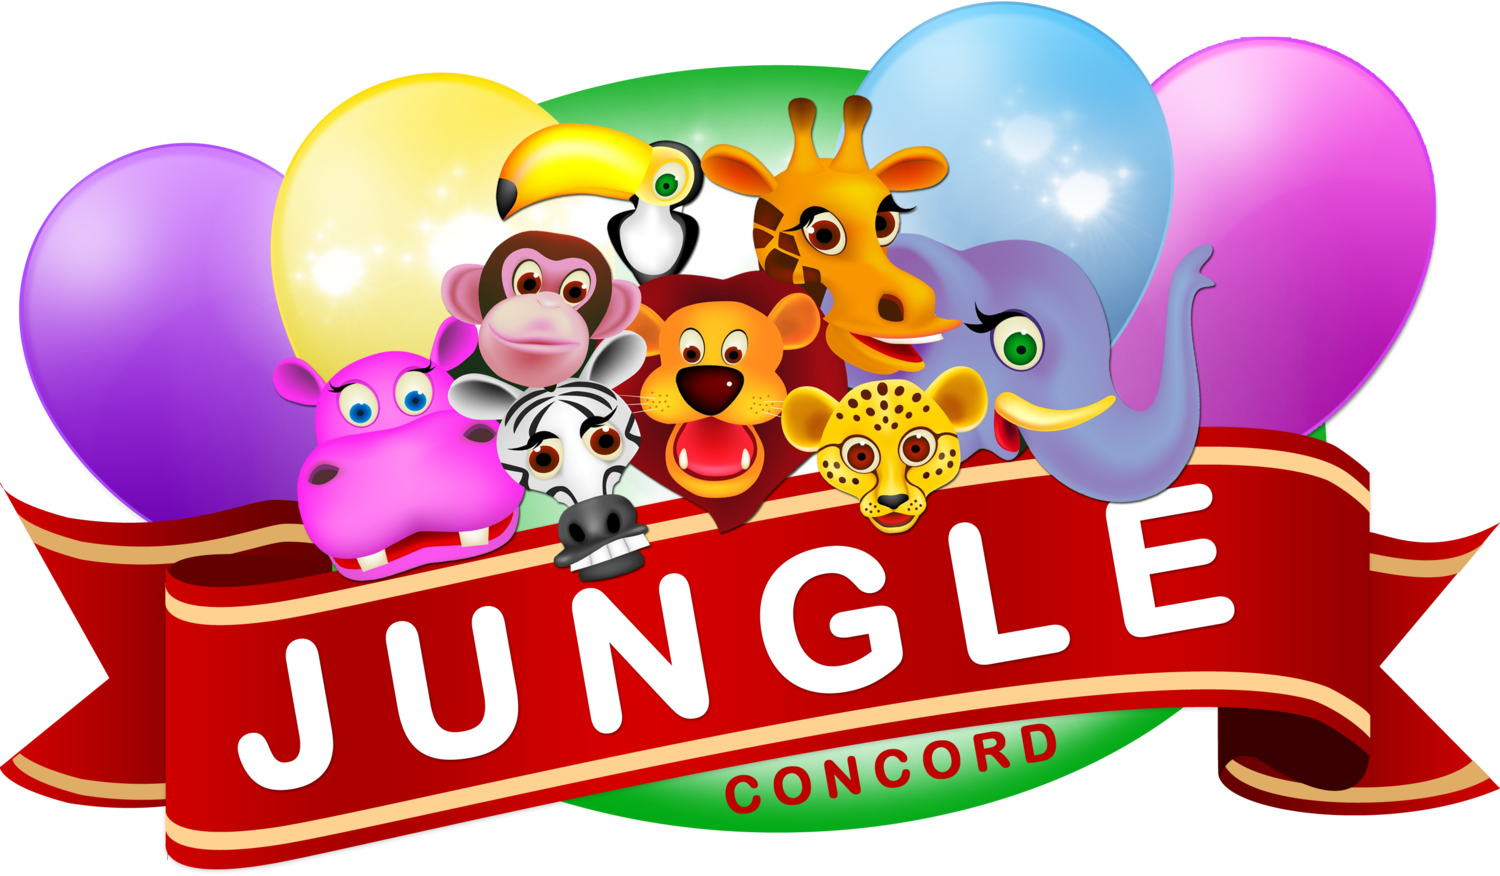 Job application jungle concord. Teen clipart welcome party